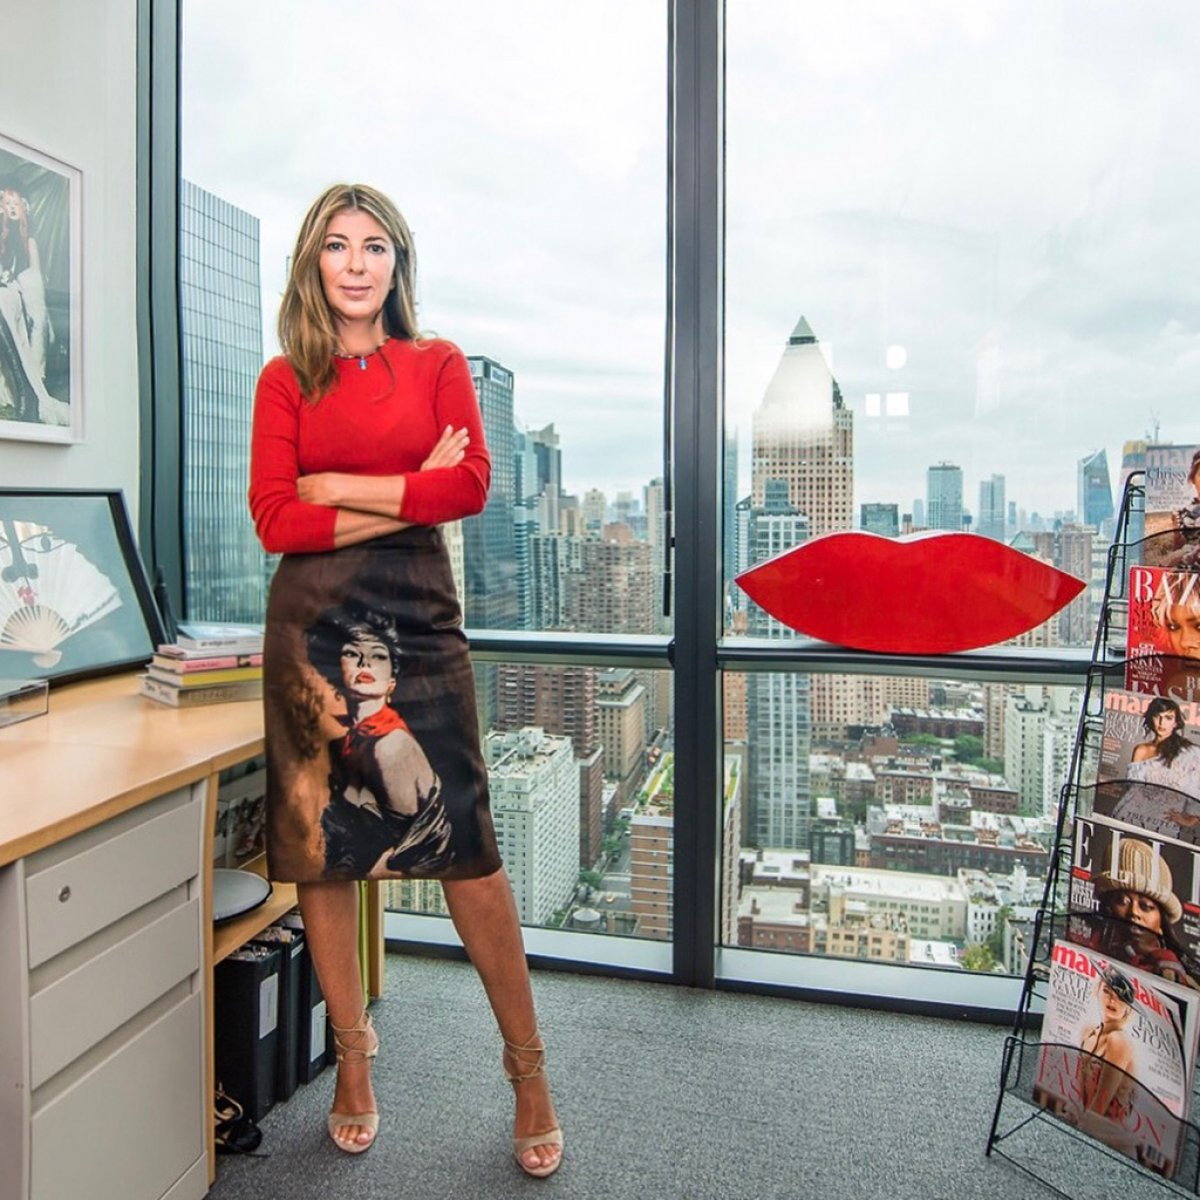 223105a64 Nina Garcia named new editor-in-chief of  Elle  magazine - Reality ...